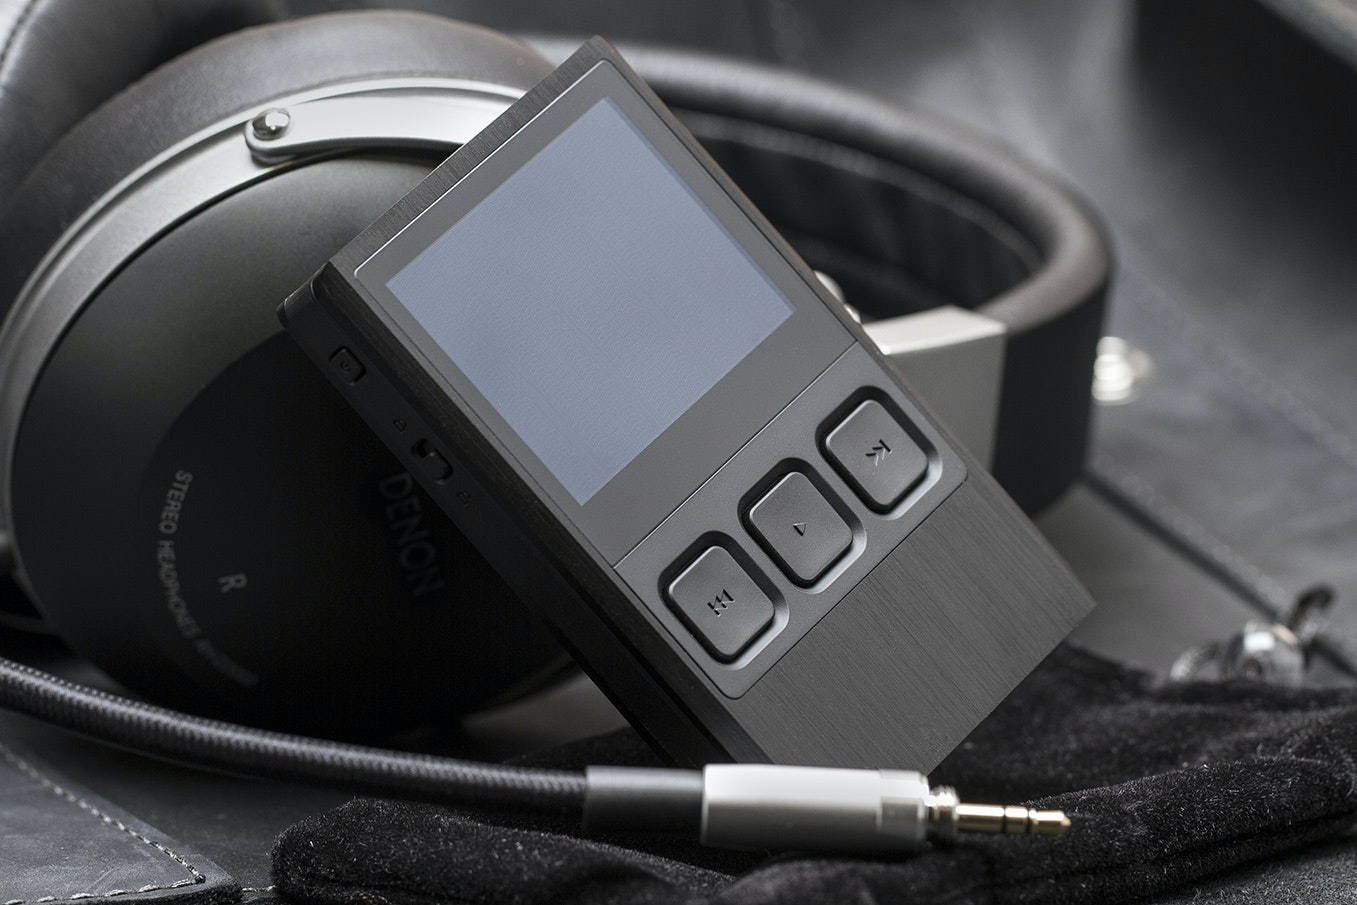 iBasso DX50 Digital Audio Player